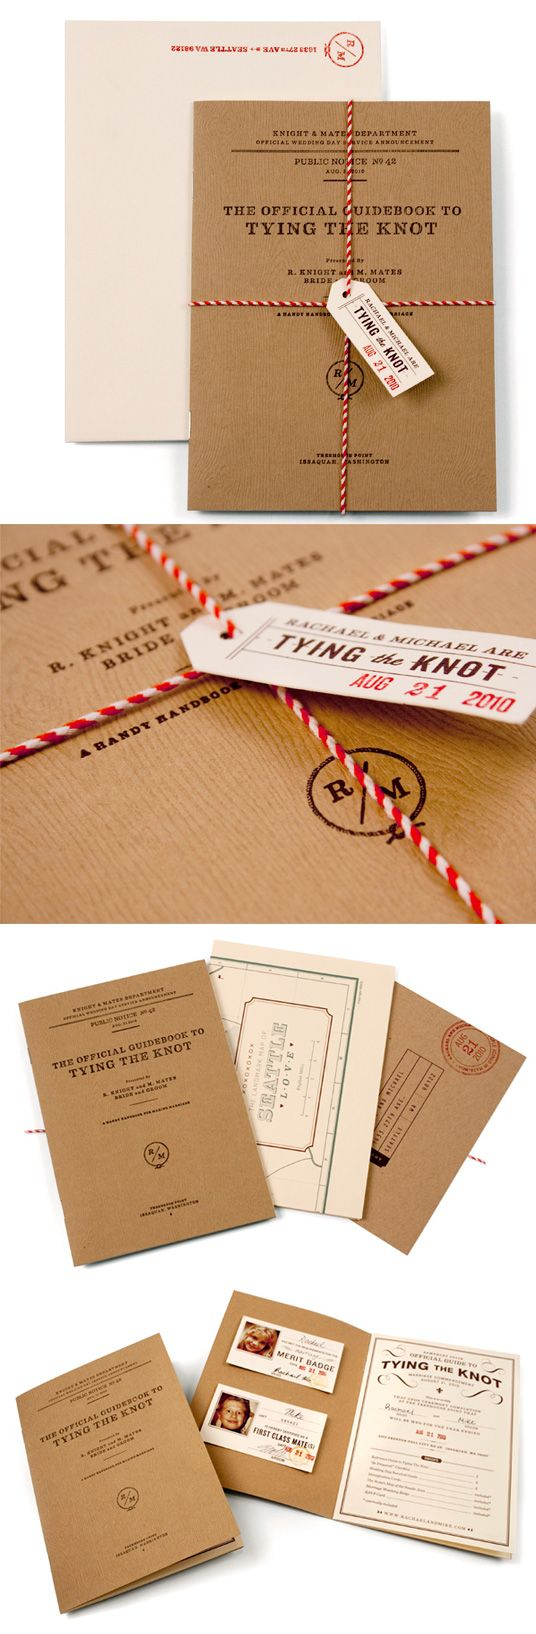 flight manual used as invite..cute attention to details: tag, baker's twine, simple typography